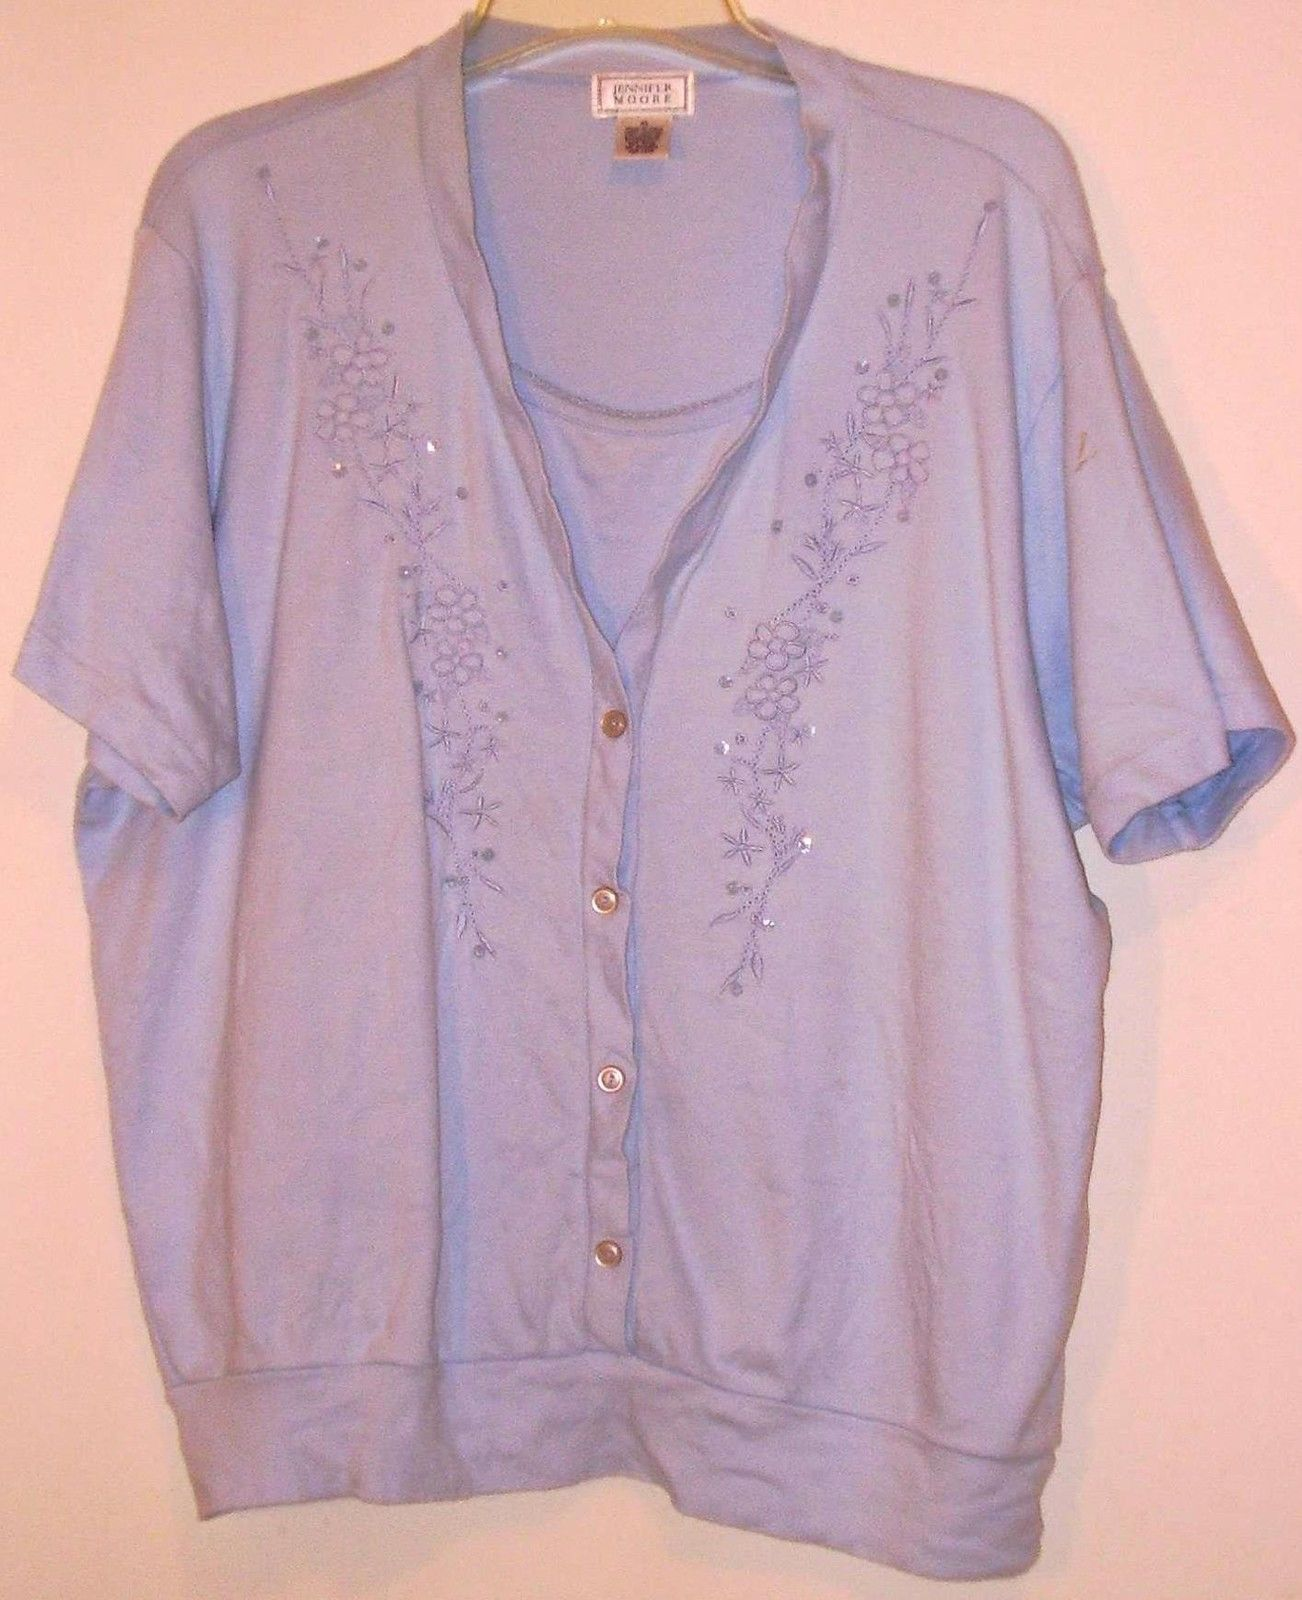 Primary image for JENNIFER  MOORE  * SHORT SLEEVE BLOUSE * XL - LIGHT BLUE - EMBROIDED CHEST DECO.